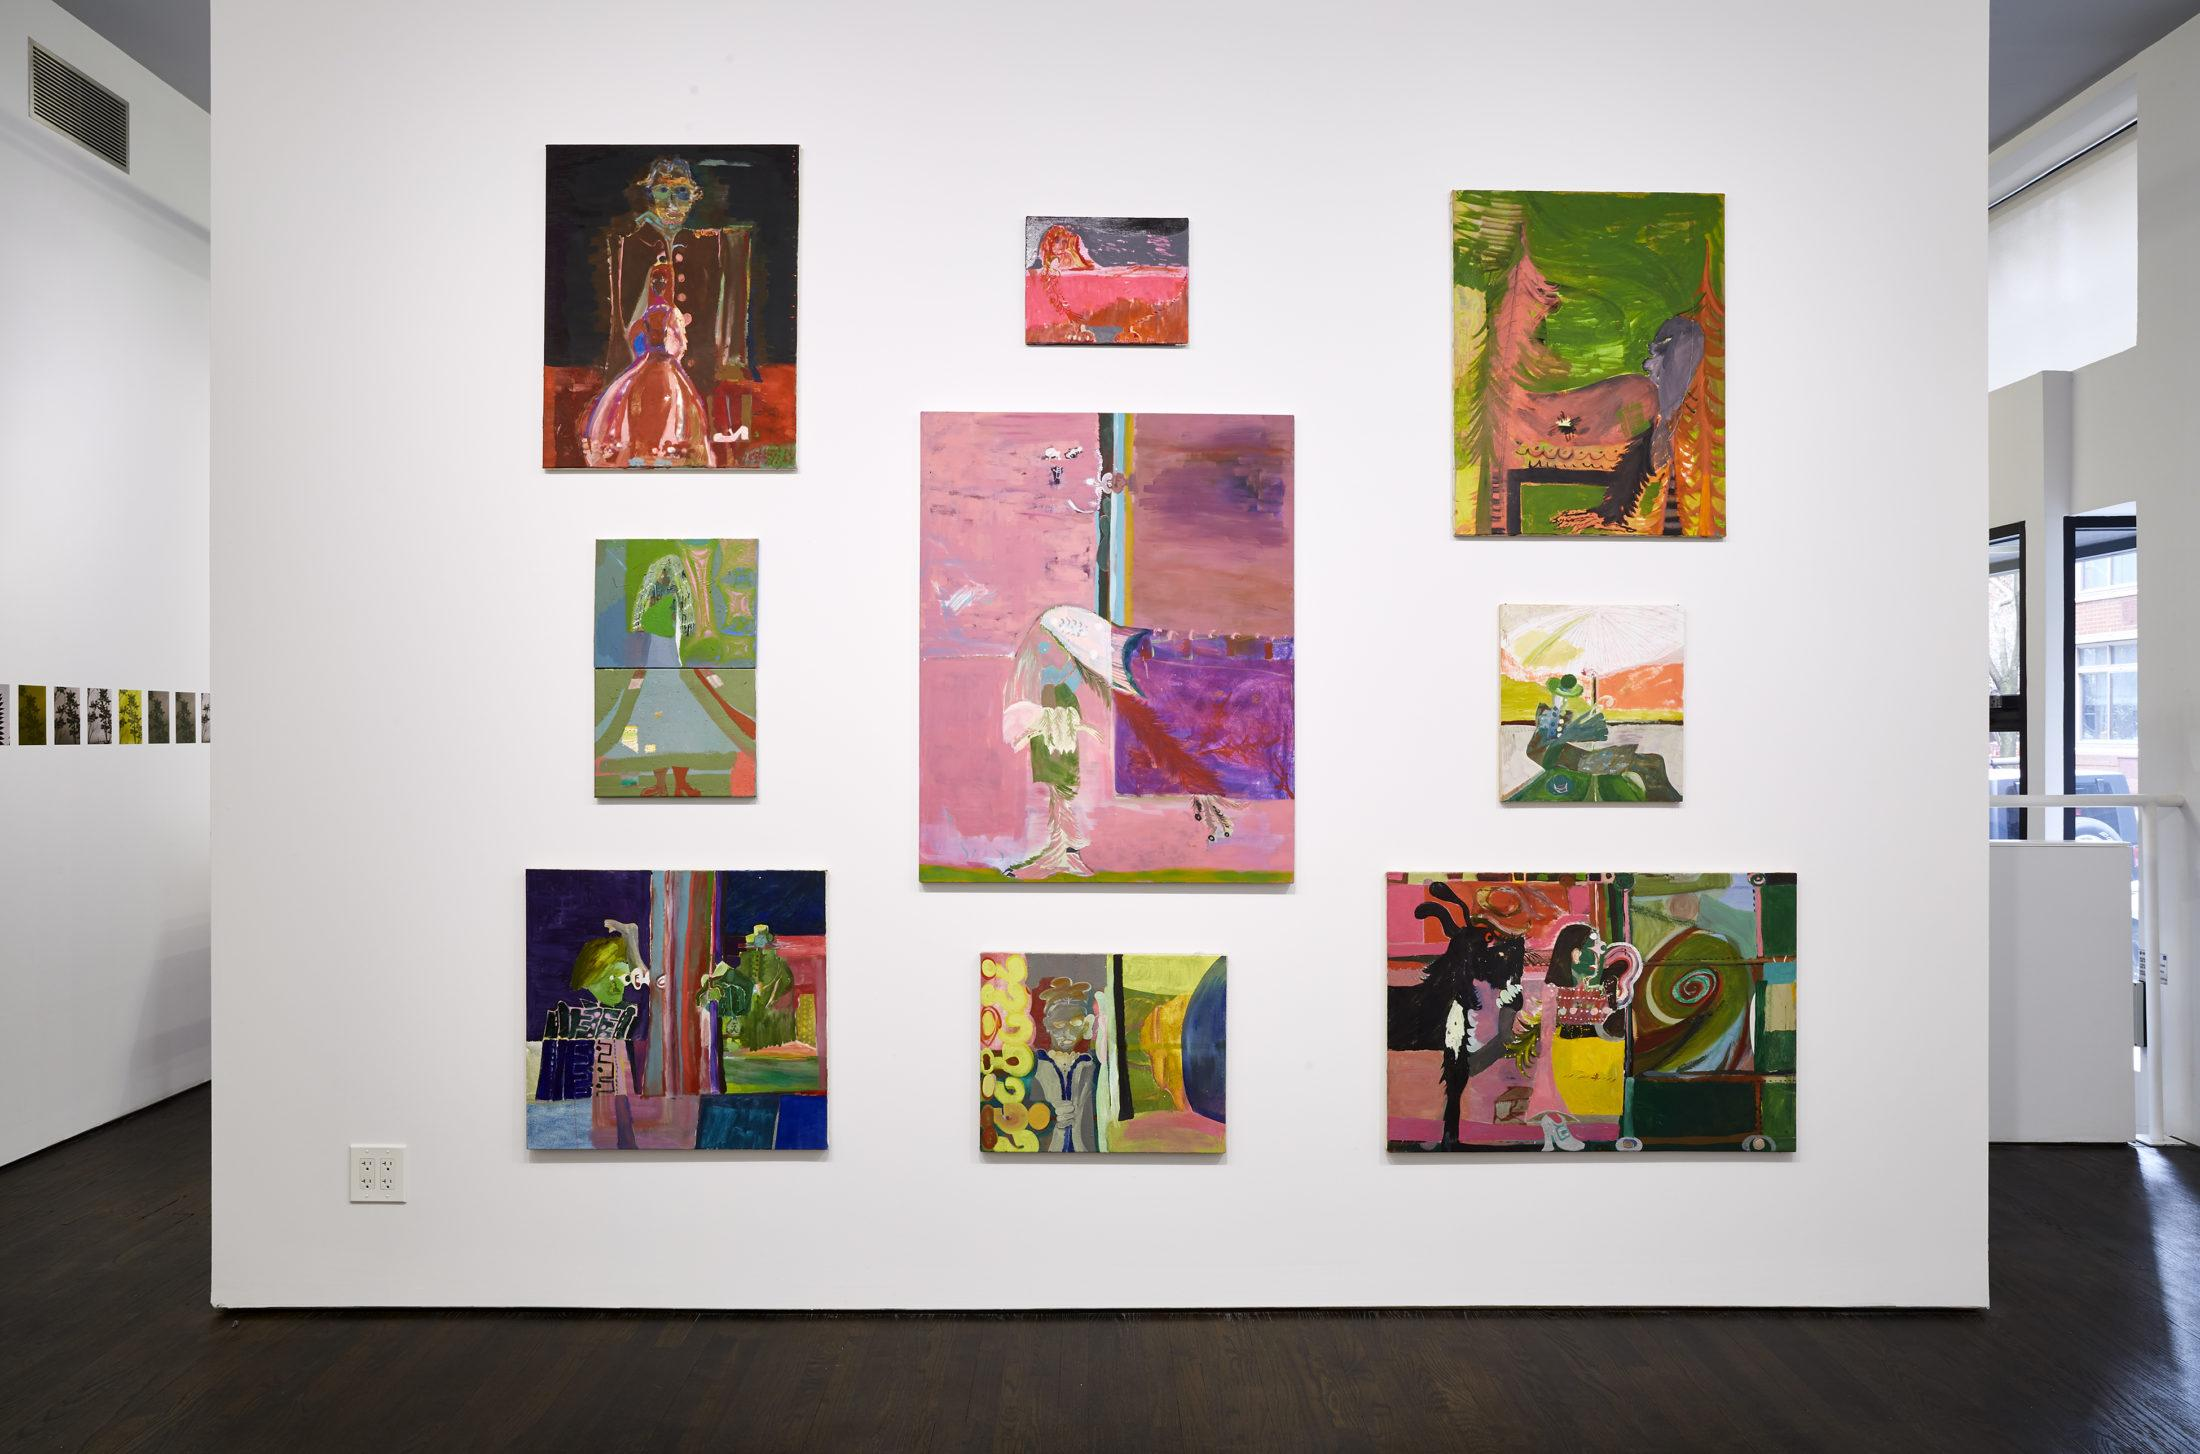 Nine paintings installed salon style on a white wall.